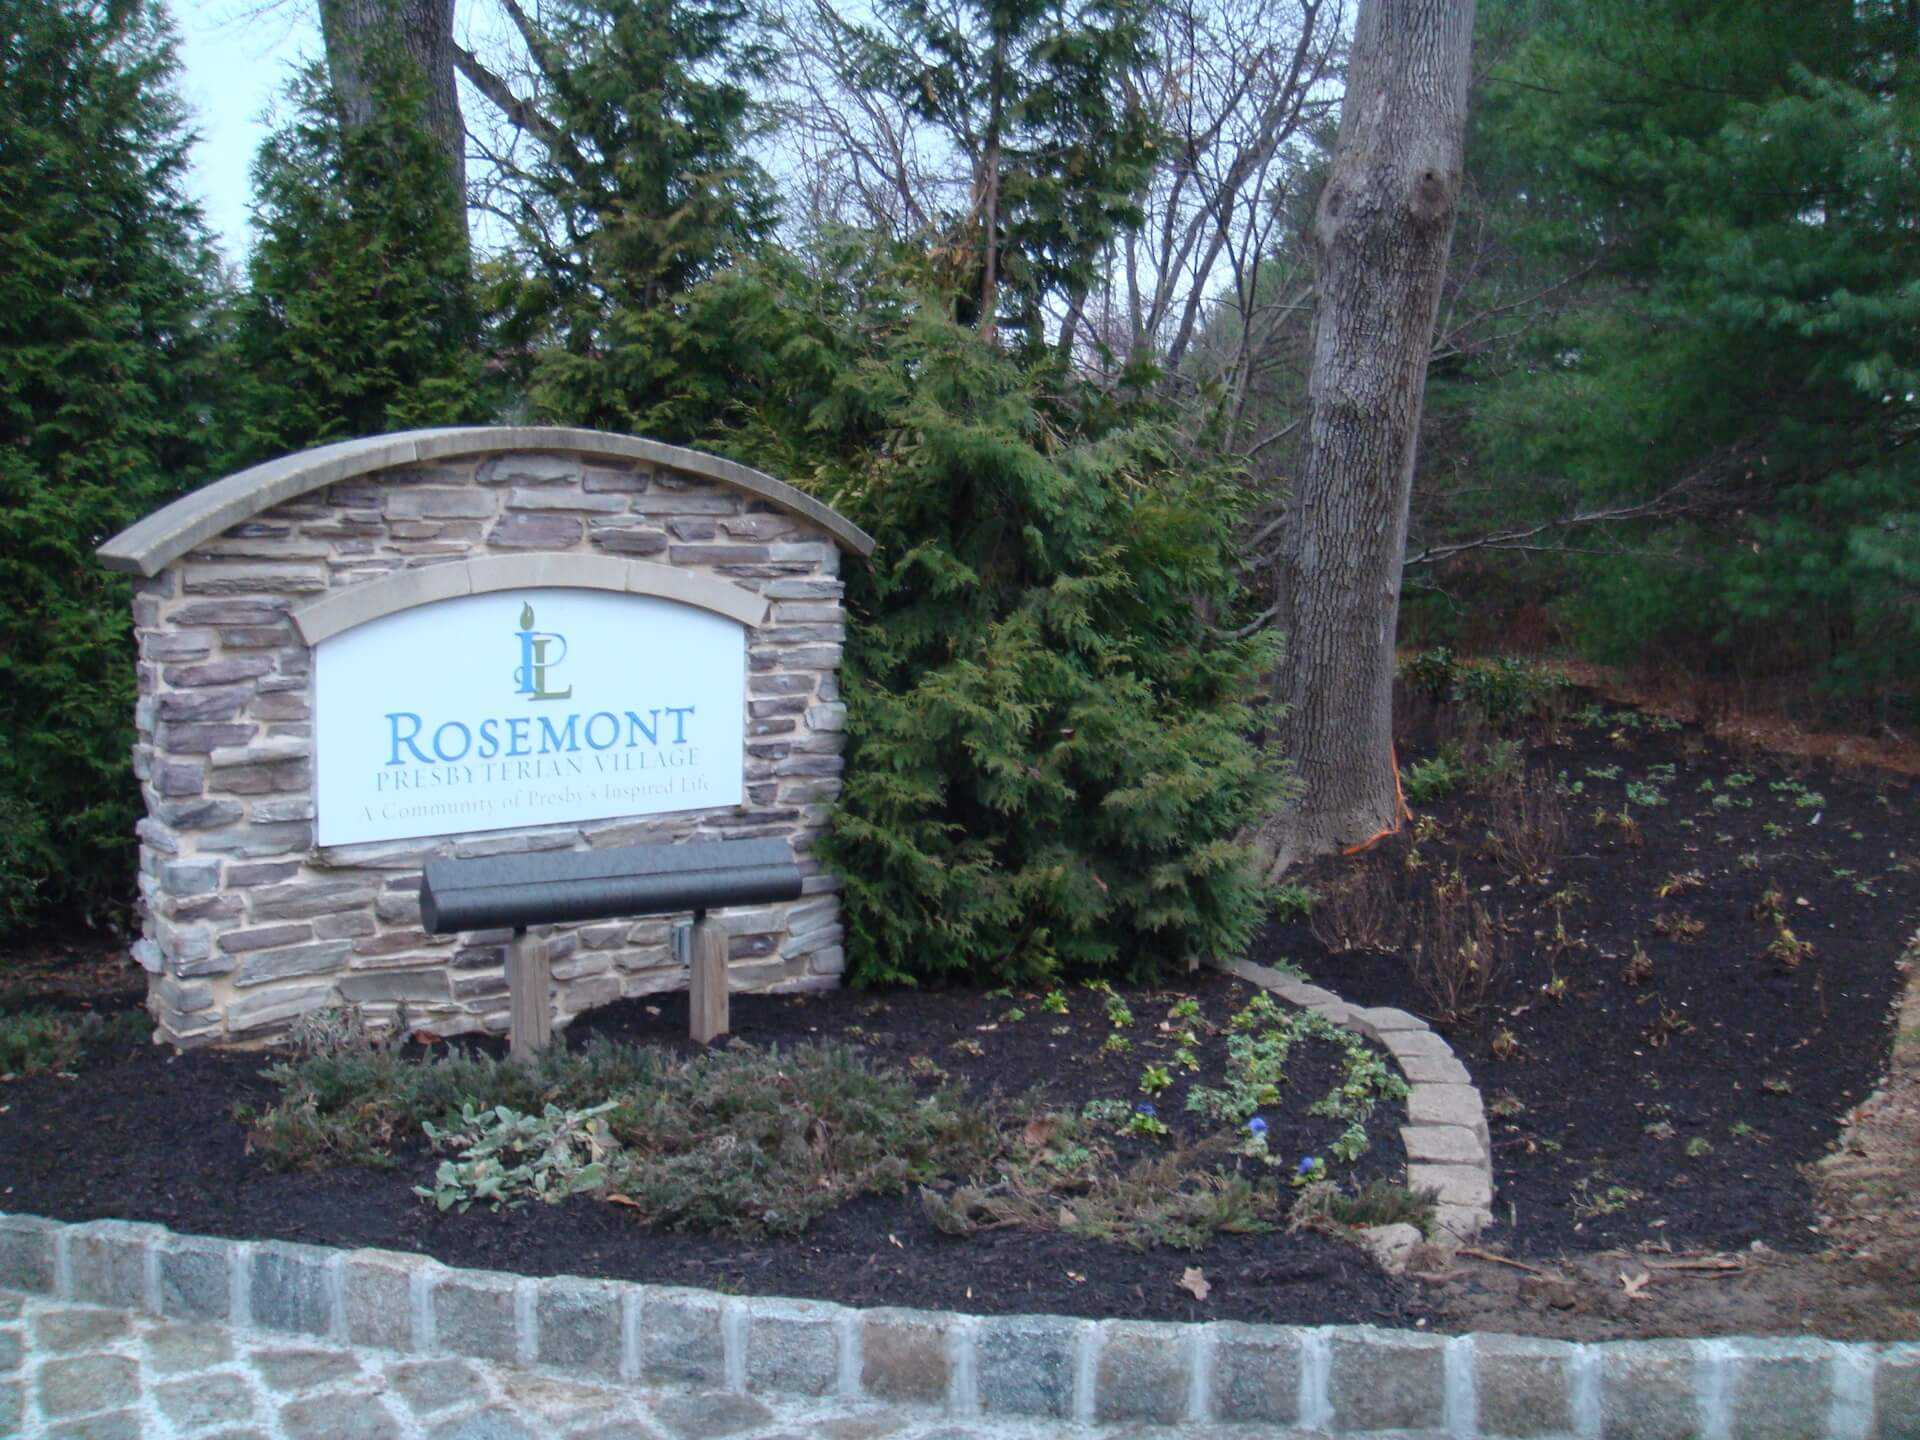 viewing Rosemont sign at entrance